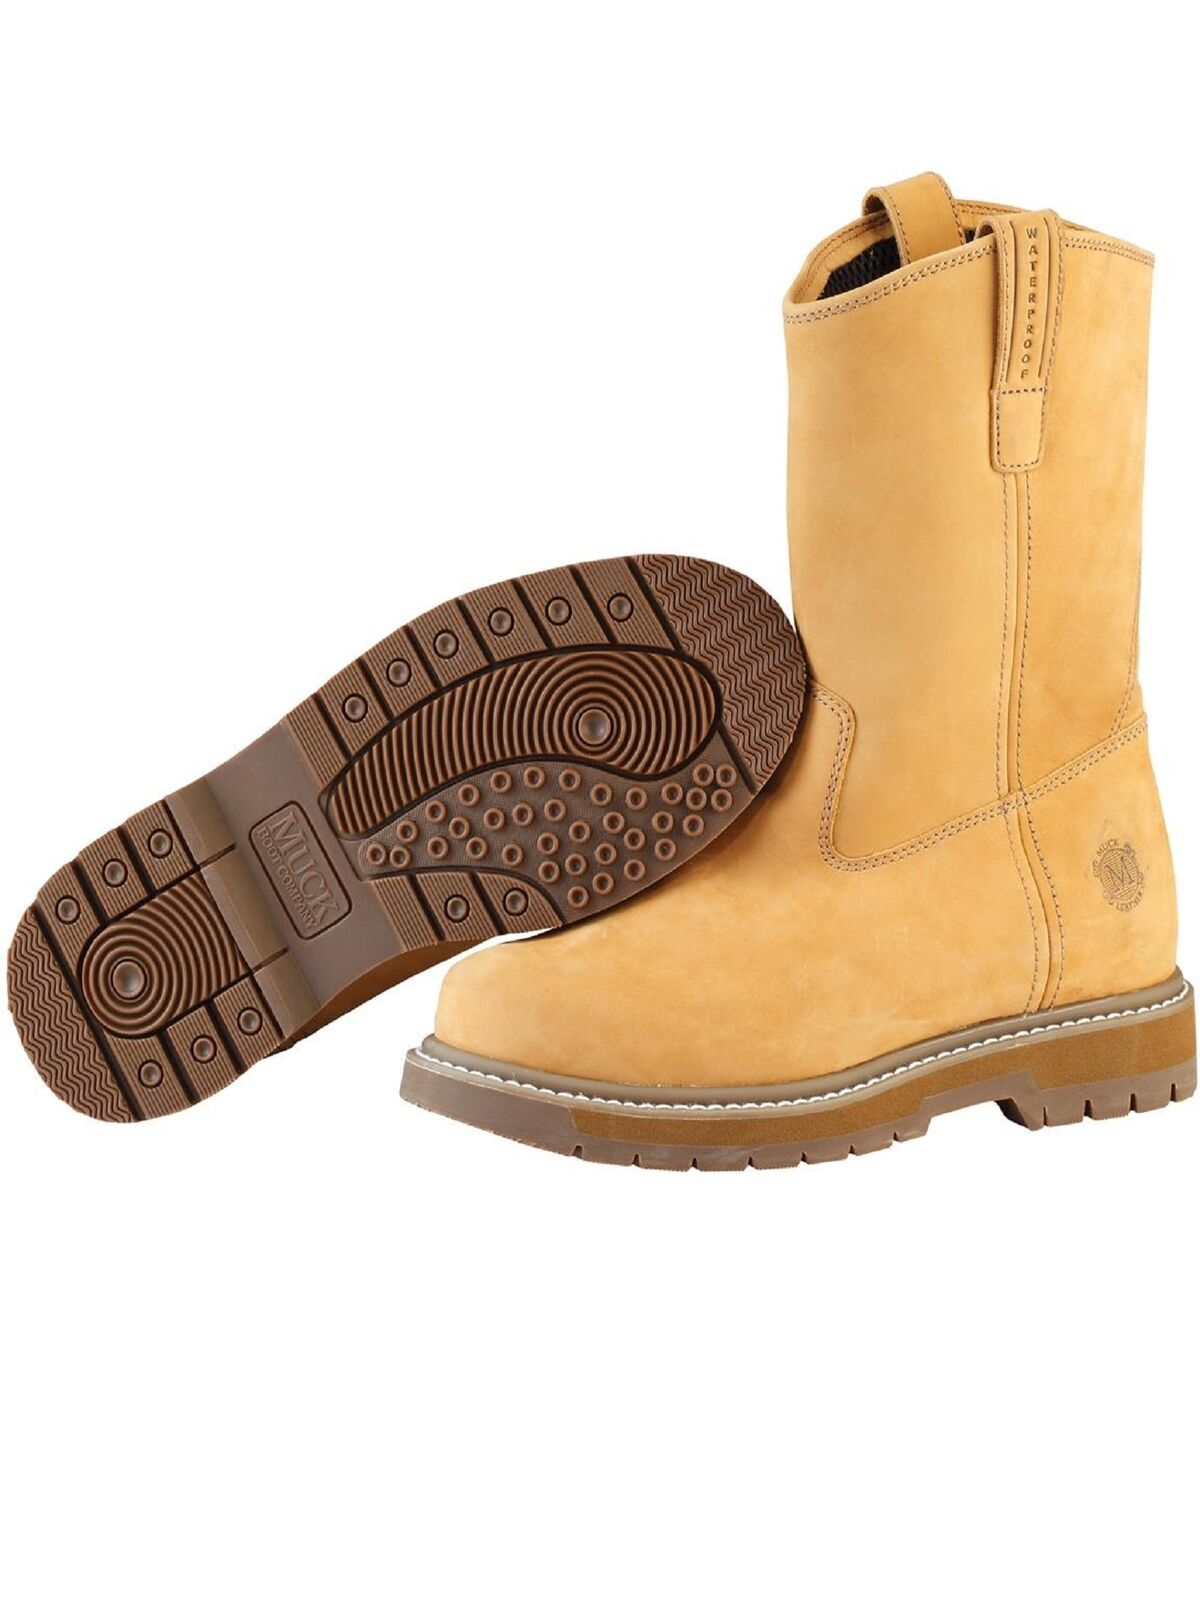 MuckBoots Men's Wheat Wellie Classic Composite Toe Work Boot, Size 7W